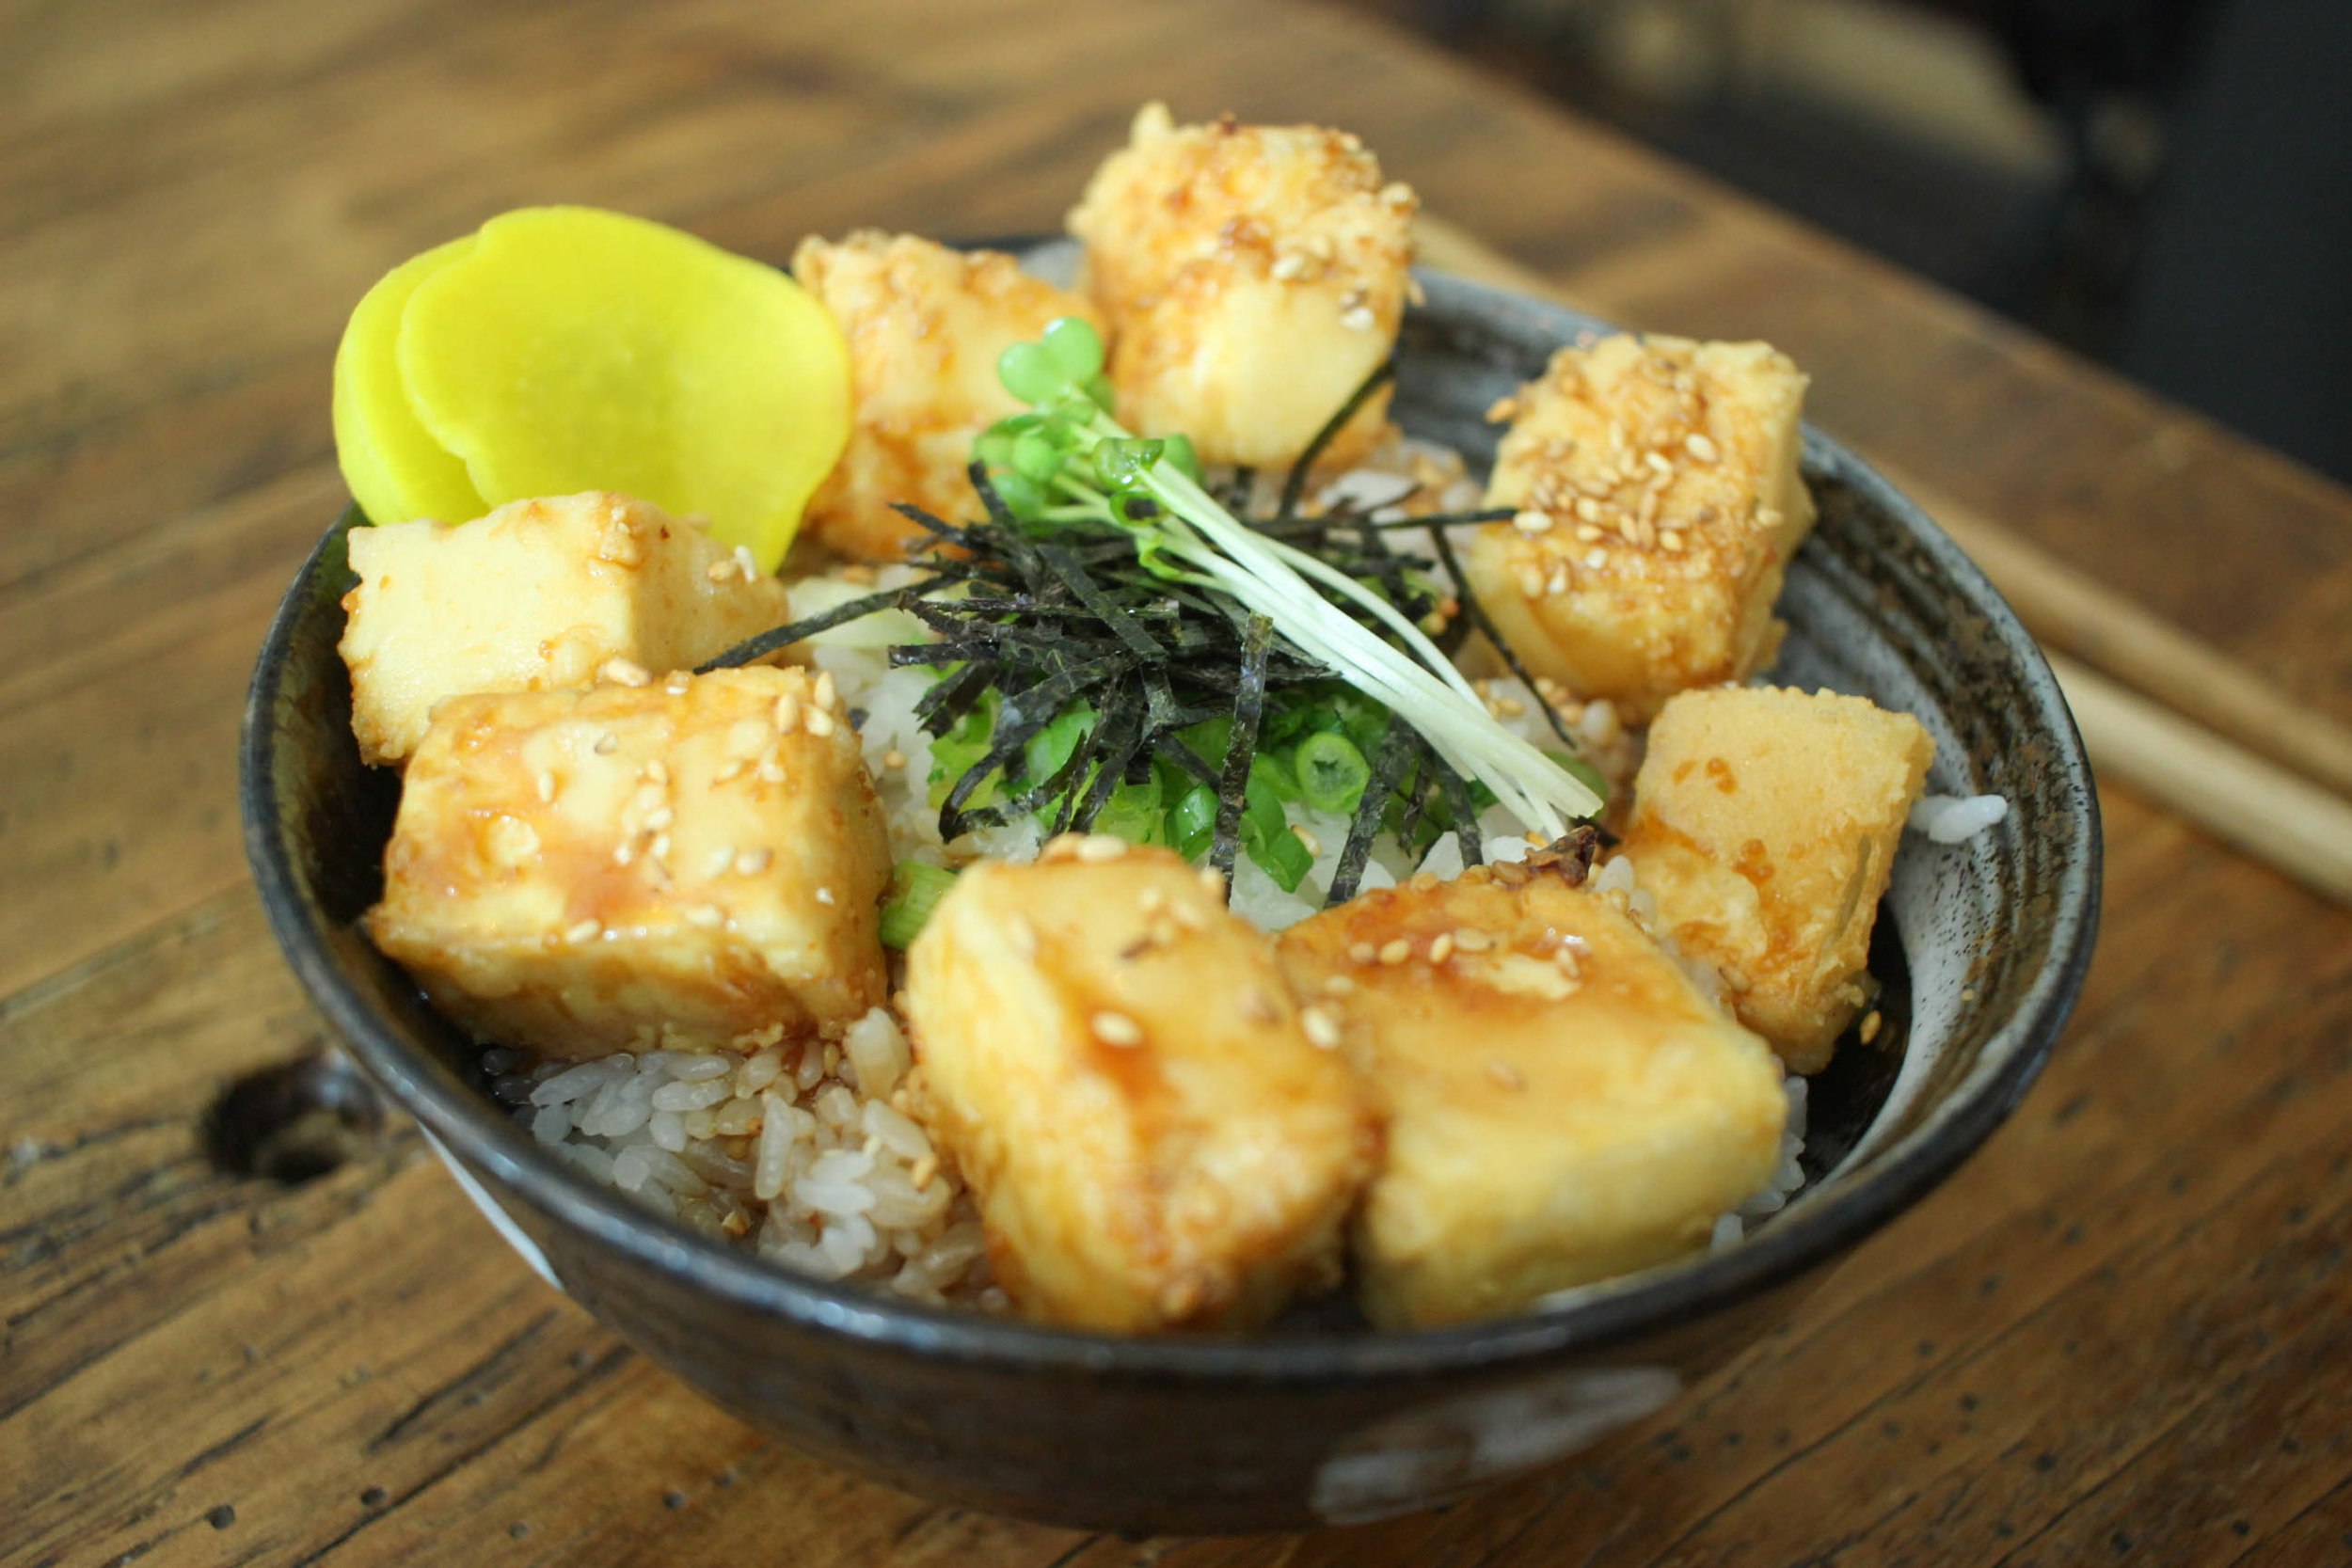 Tofu bowl with lightly deep-fried tofu served over rice.